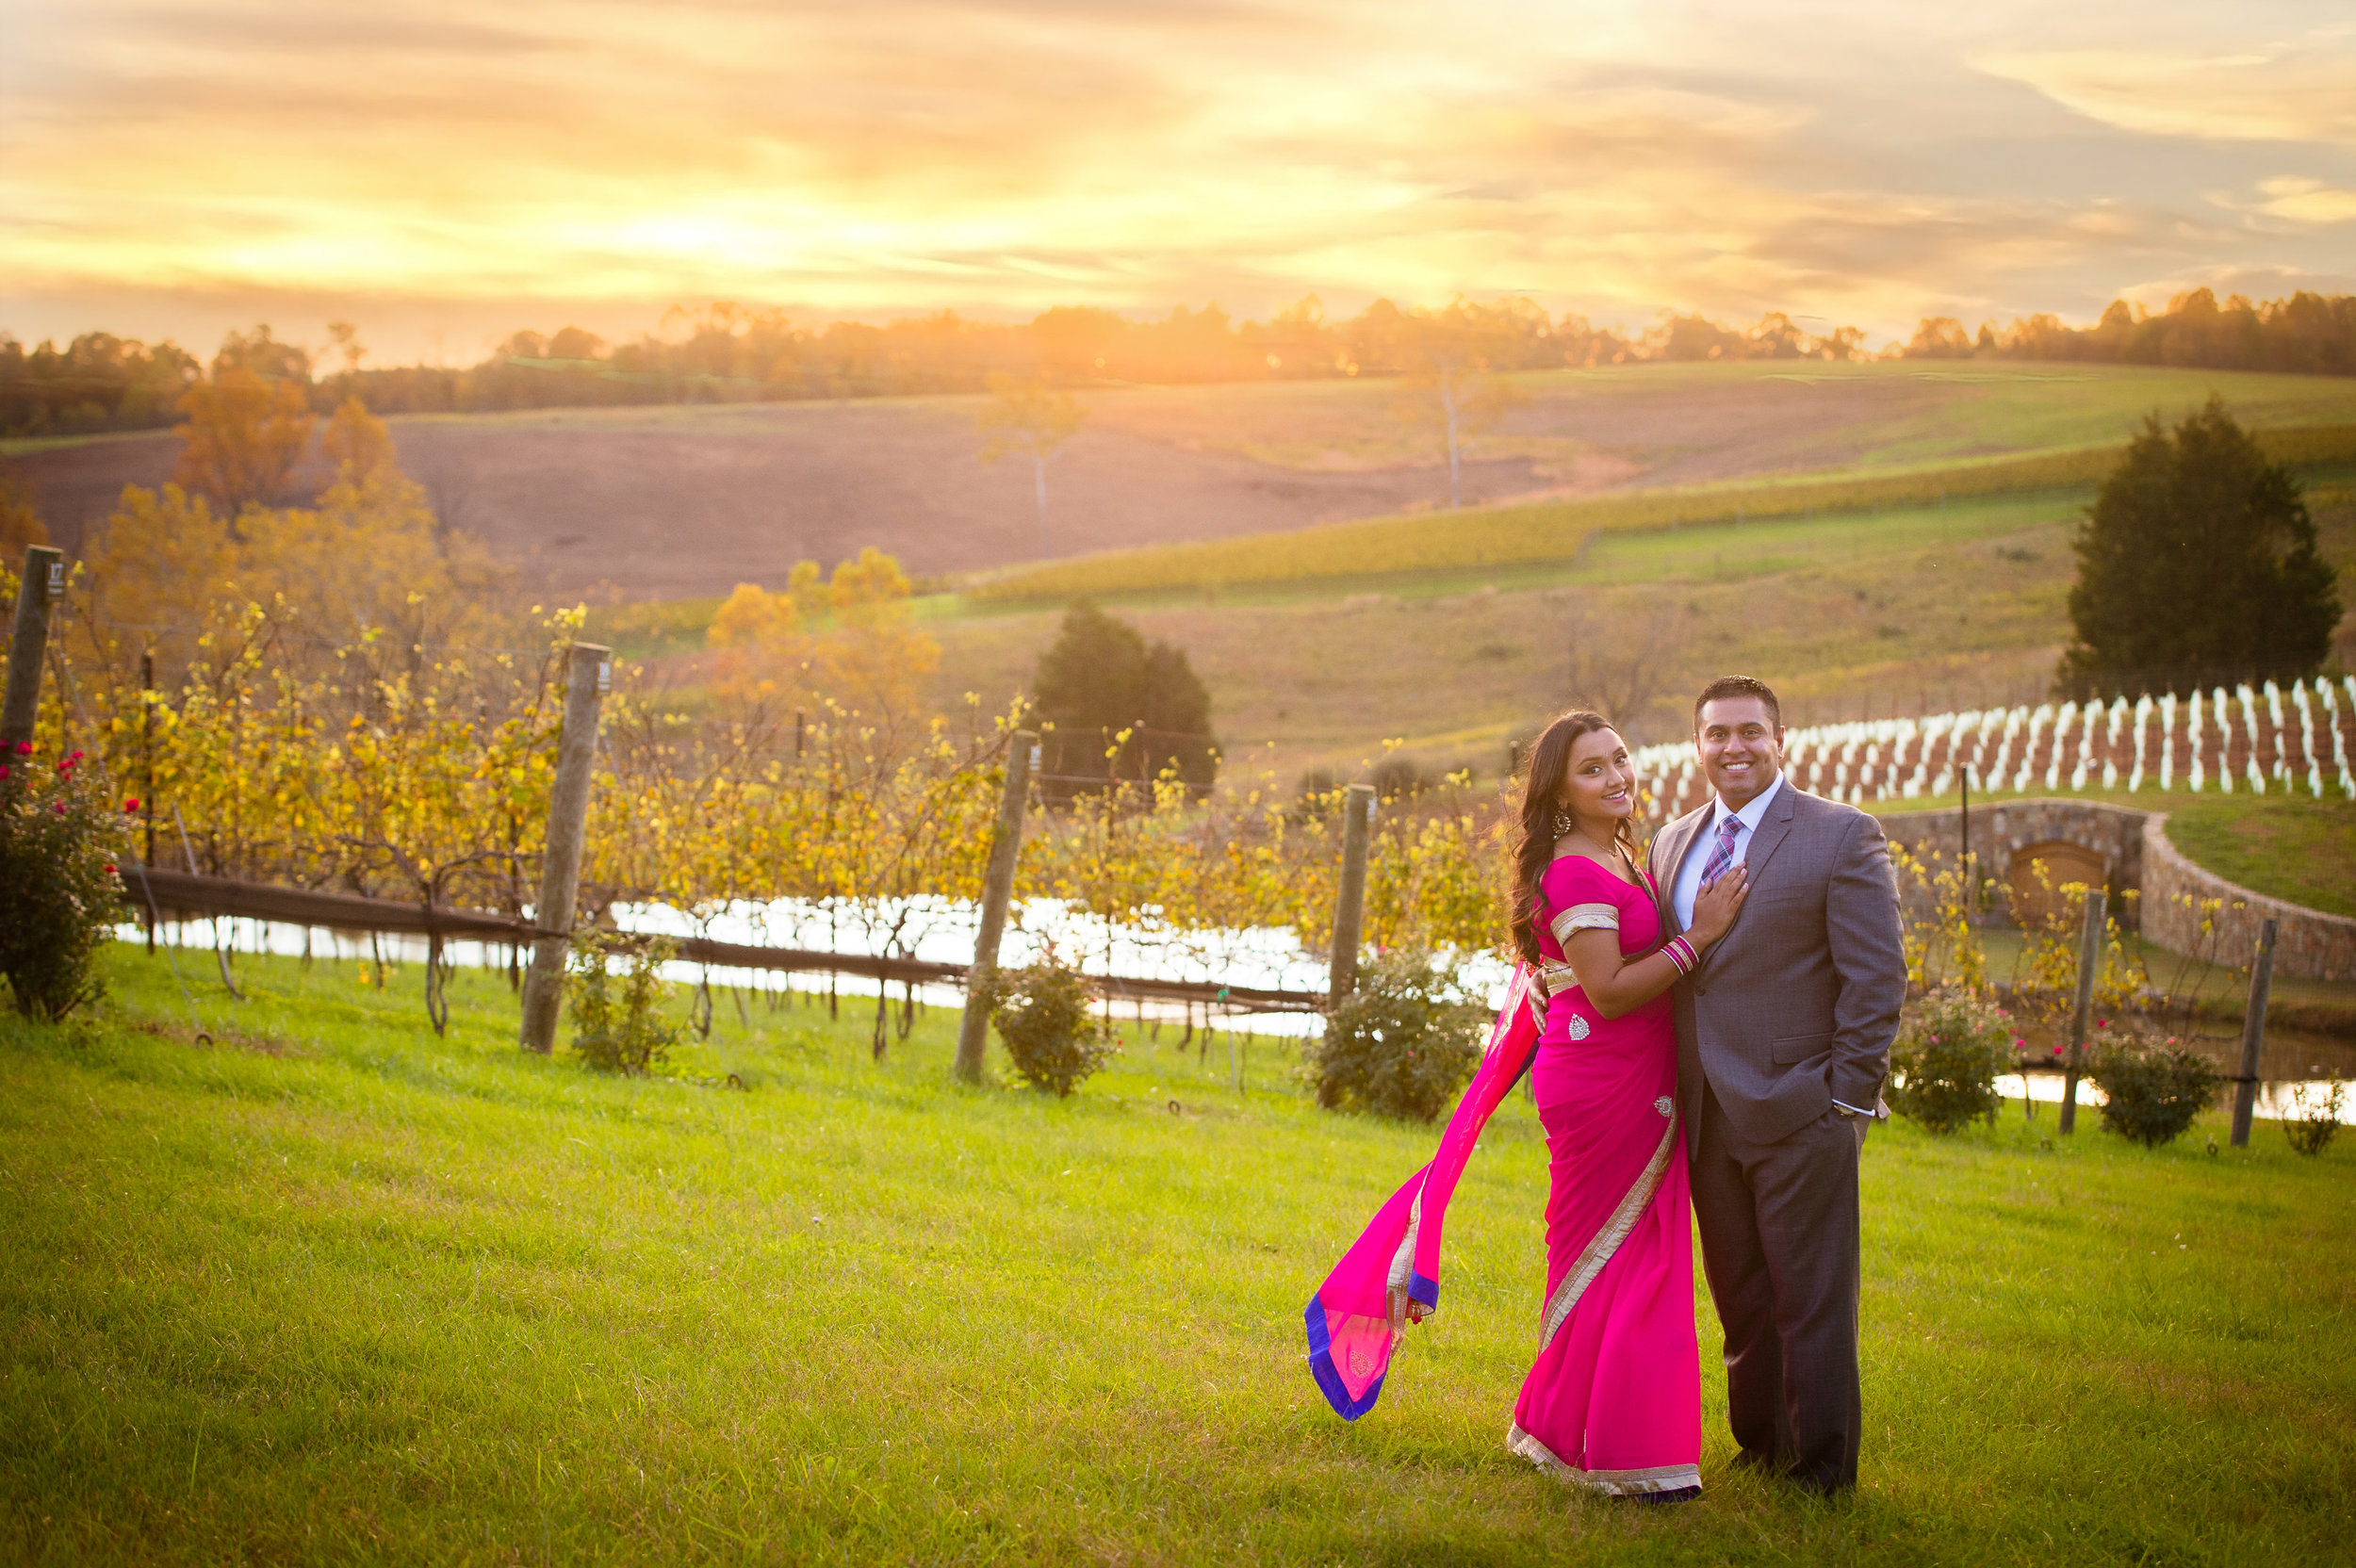 Lock and Co. Traci JD Medlock Washington DC Wedding Portrait Music Photography Videography Lifestyle Photographers Virginia Engagement Session winery vinyard.jpg